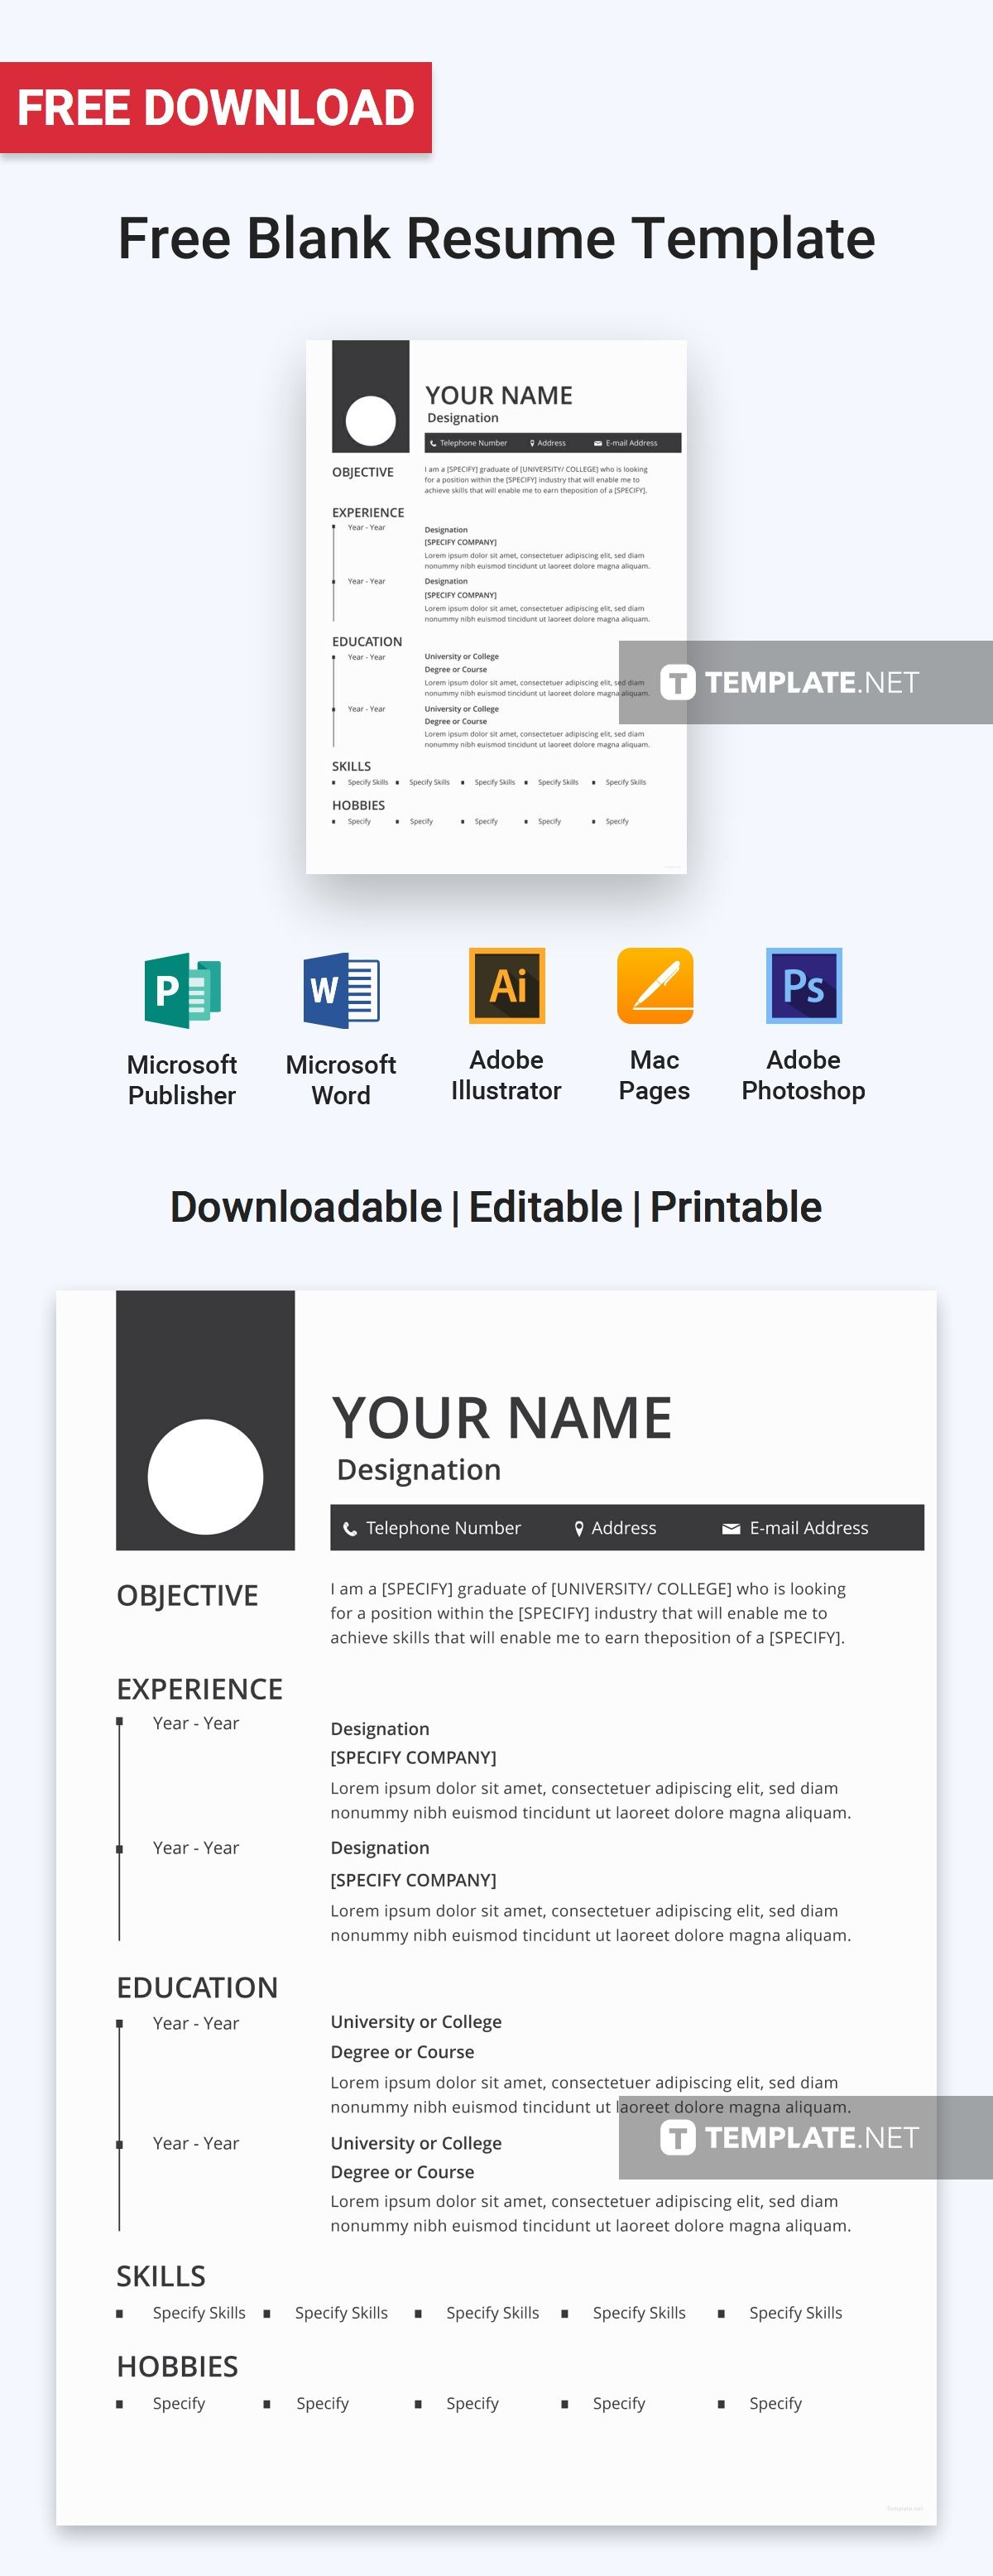 Free Blank Resume Extraordinary Free Blank Resume  Template Professional Resume Samples And .